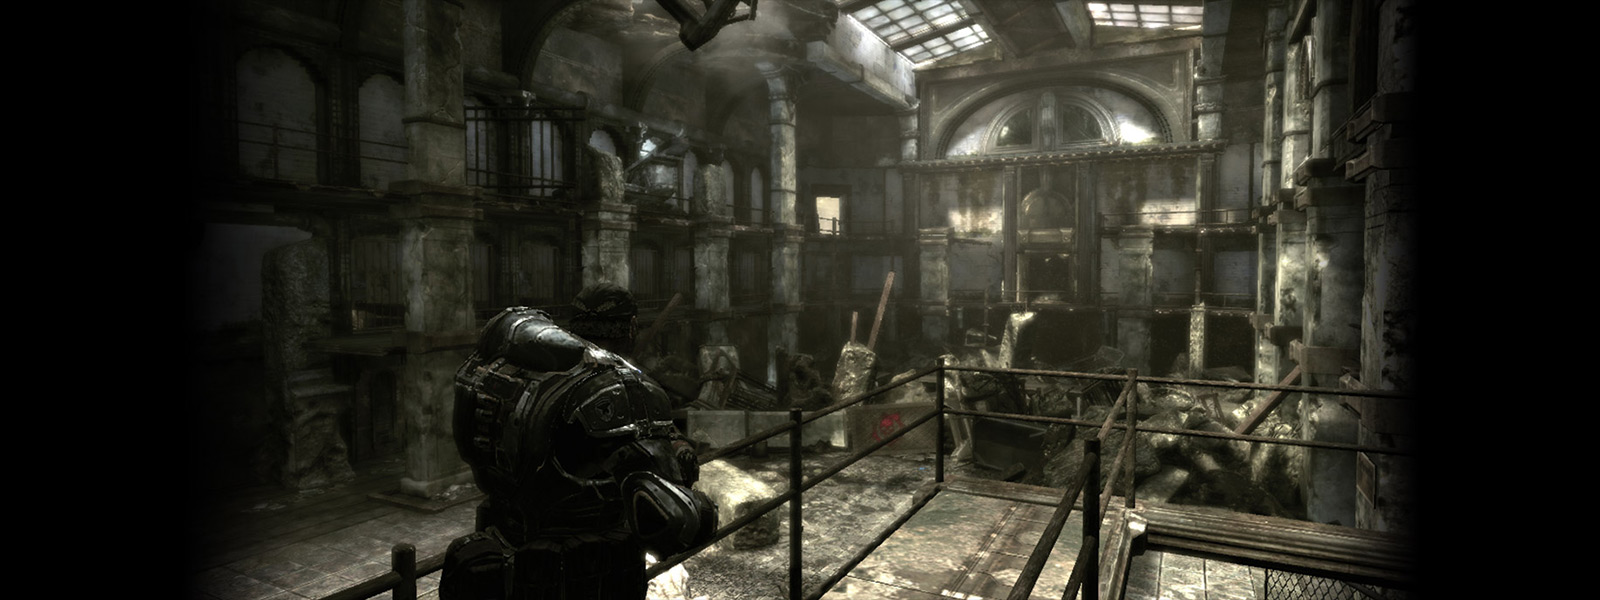 Original version scene with Marcus Fenix looking on a slab map interior scene